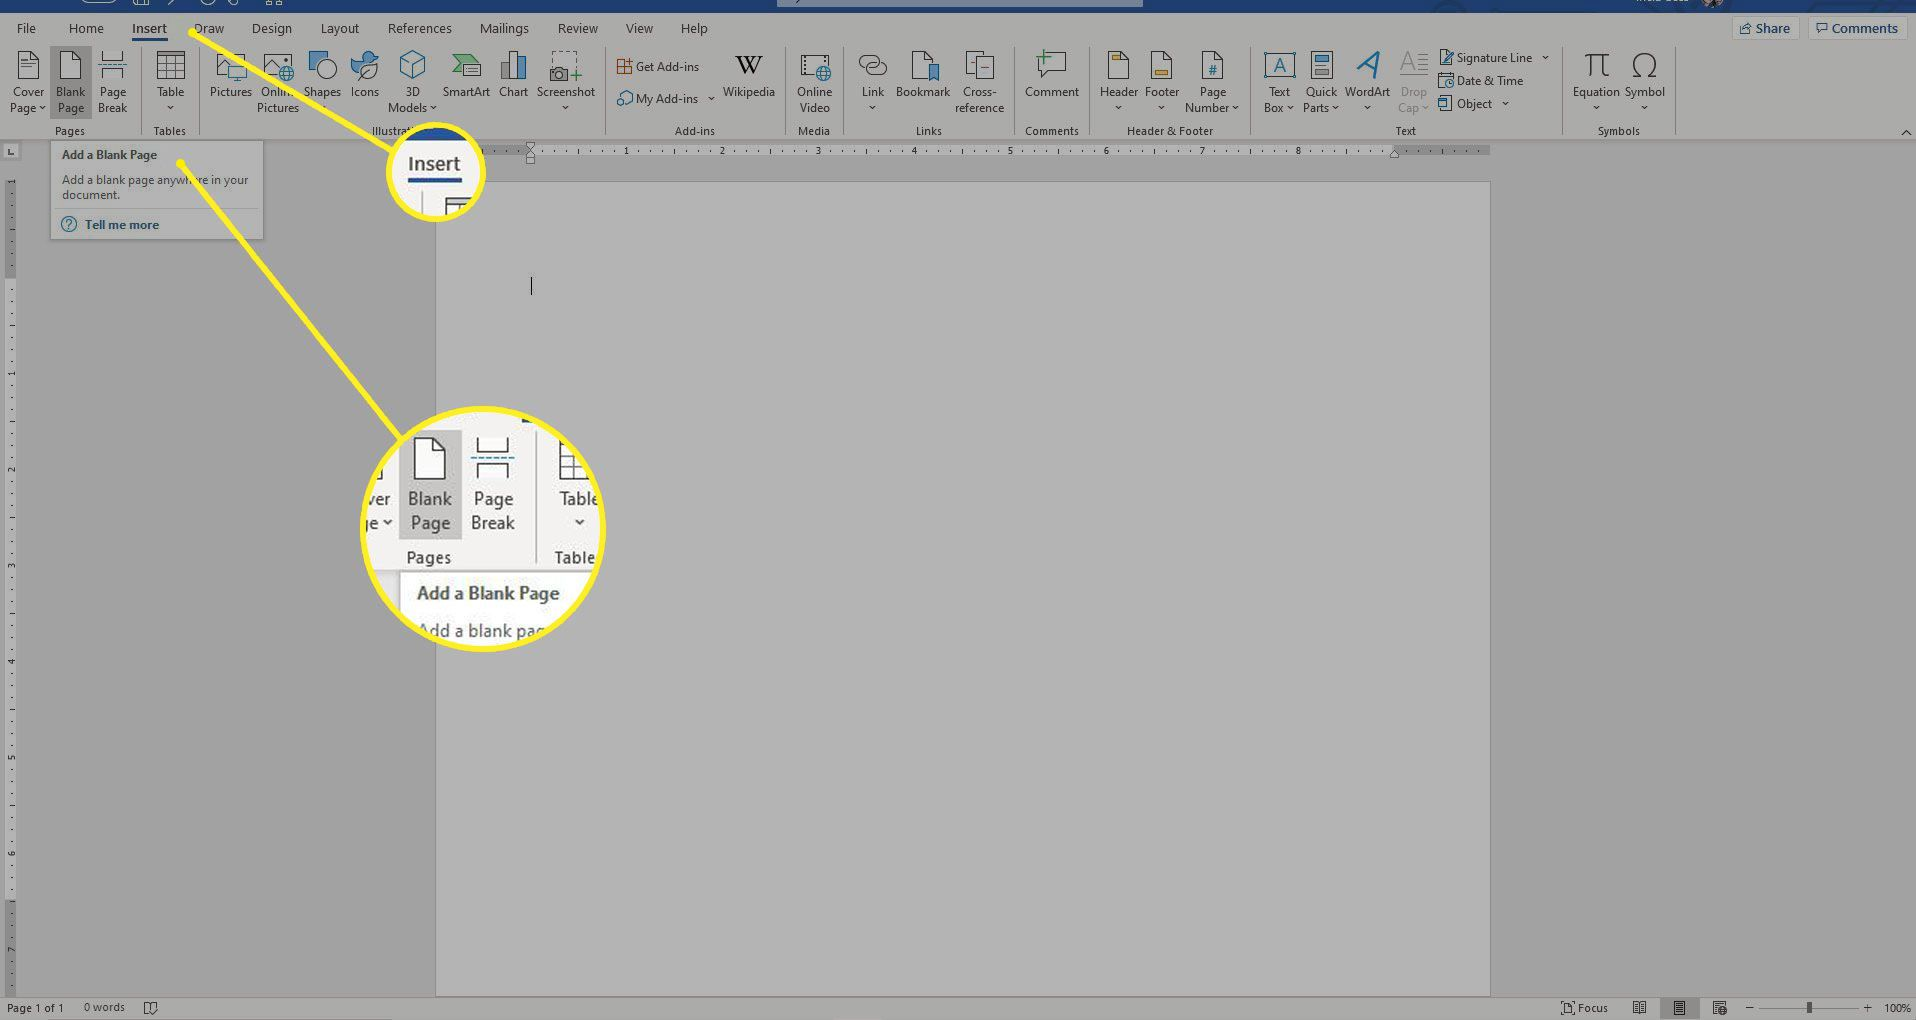 Word with the Insert and Blank Page sections highlighted